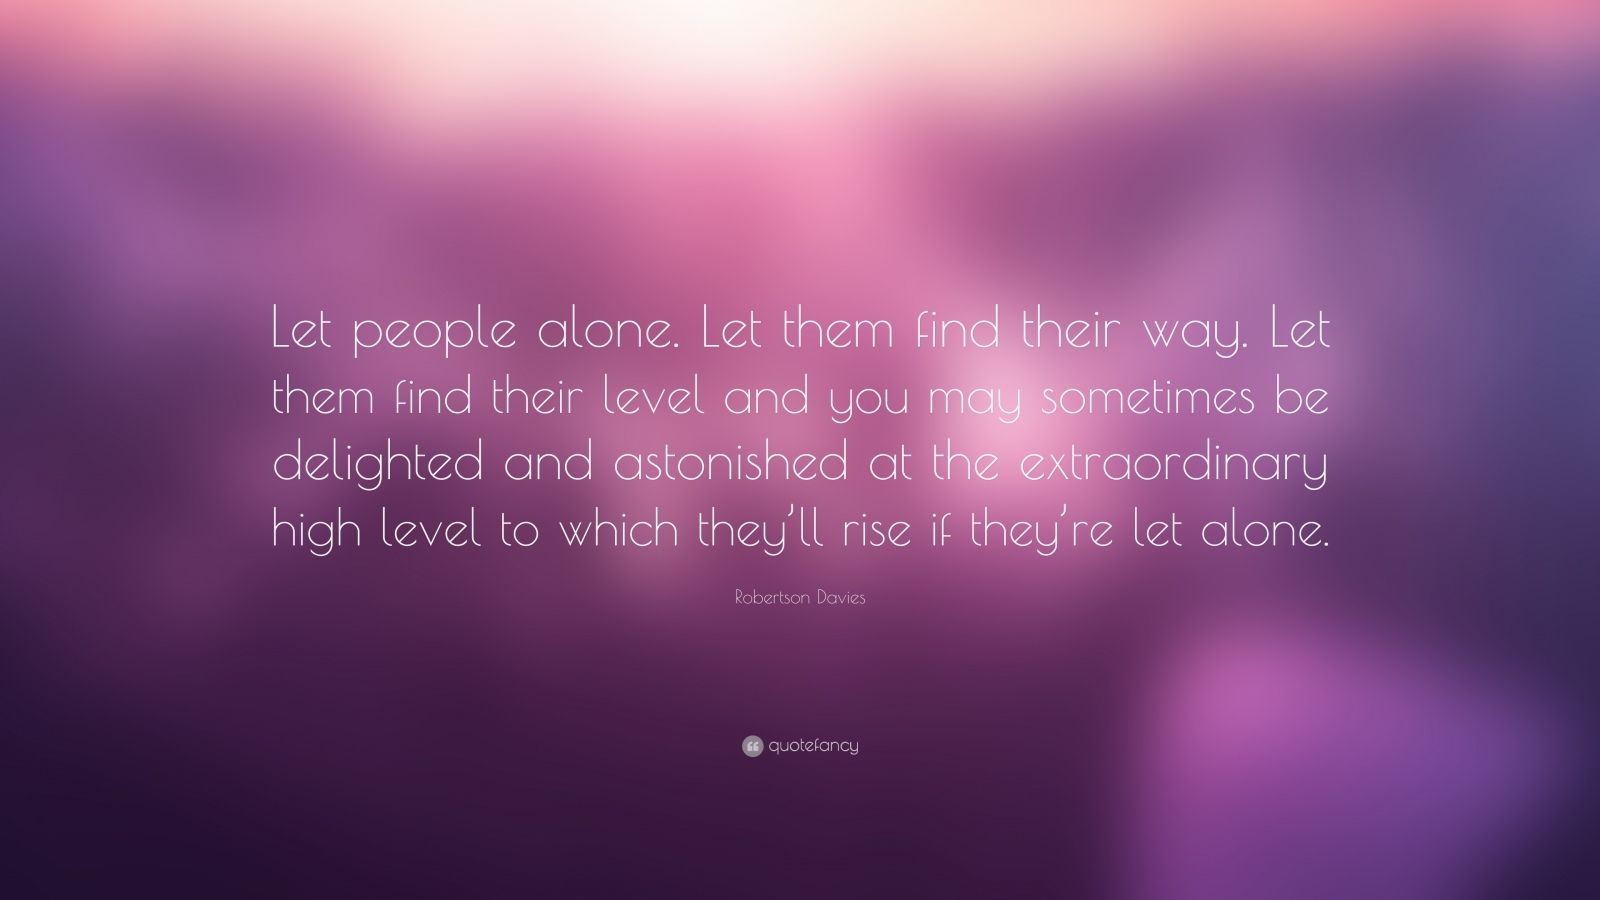 """Robertson Davies Quote: """"Let people alone. Let them find their way. Let them find their level and you may sometimes be delighted and astonished at the extraordinary high level to which they'll rise if they're let alone."""""""